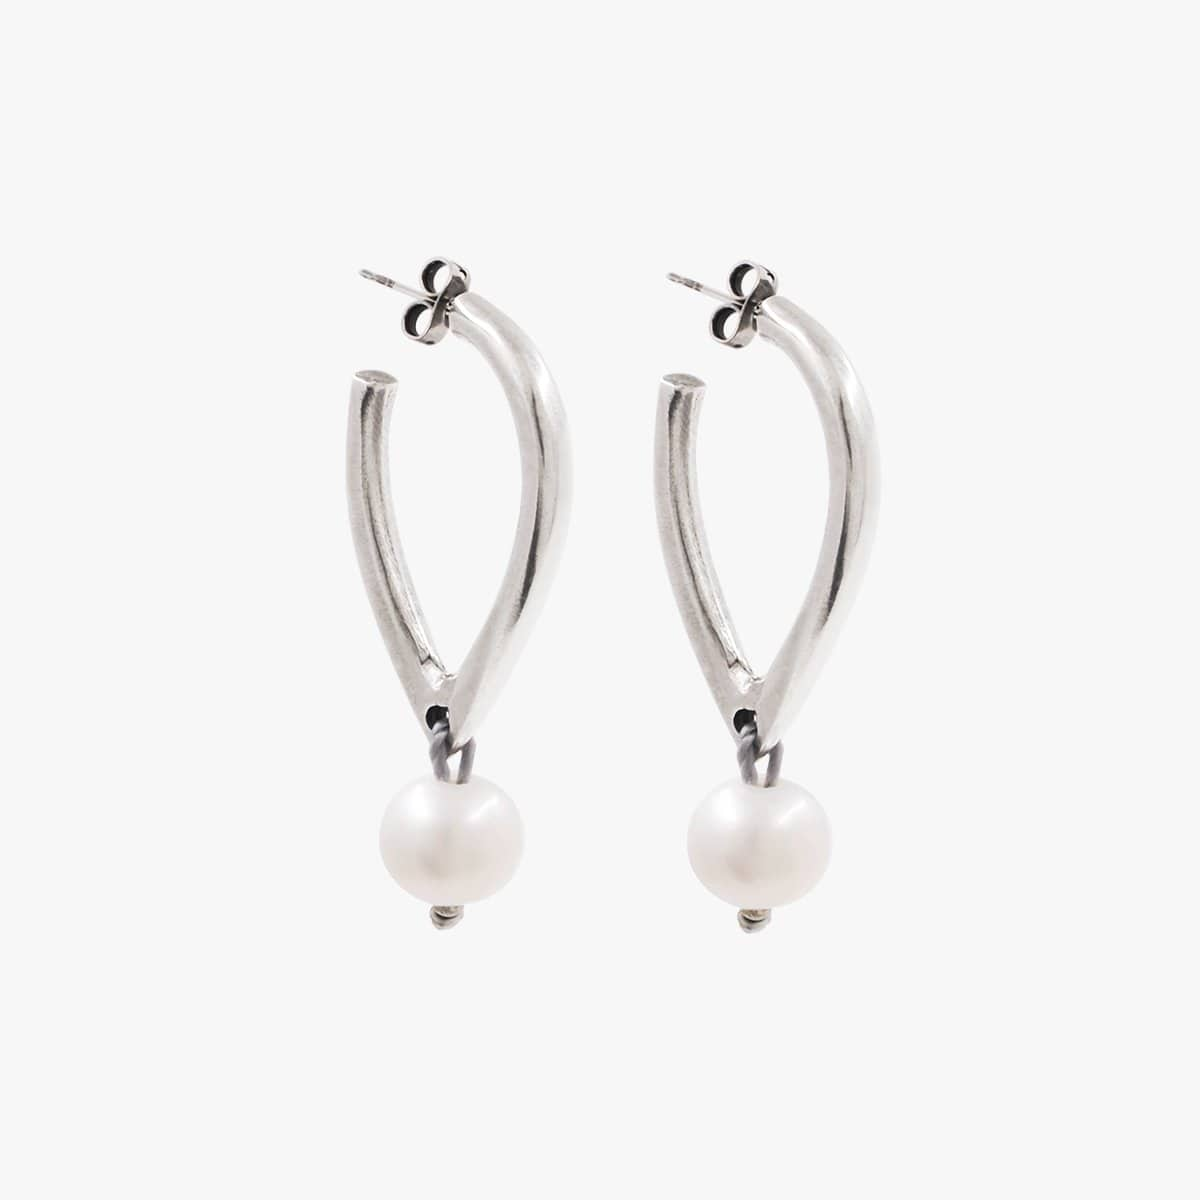 Sterling Silver Plated Pearl Earrings - E0057 MTP-CXC-Renee Taylor Gallery